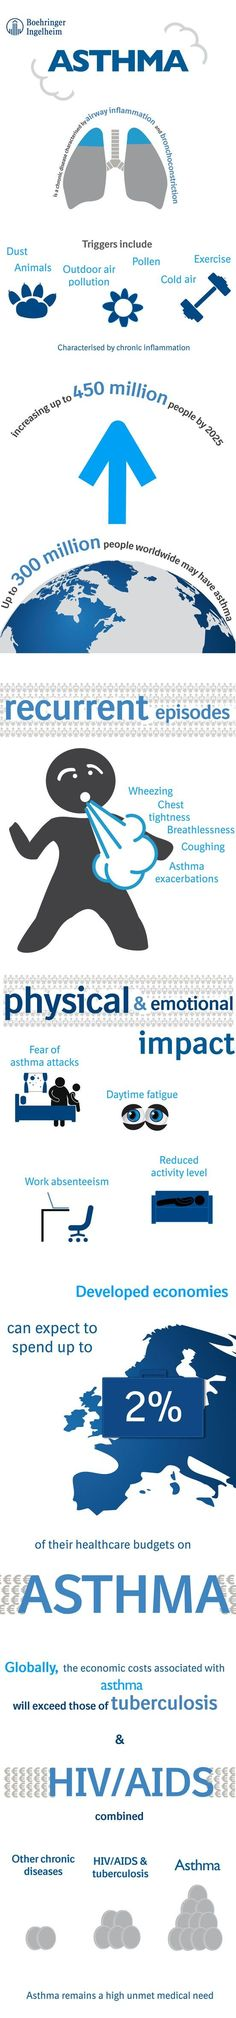 anaphylaxis poster - Google Search Body says  - asthma action plan